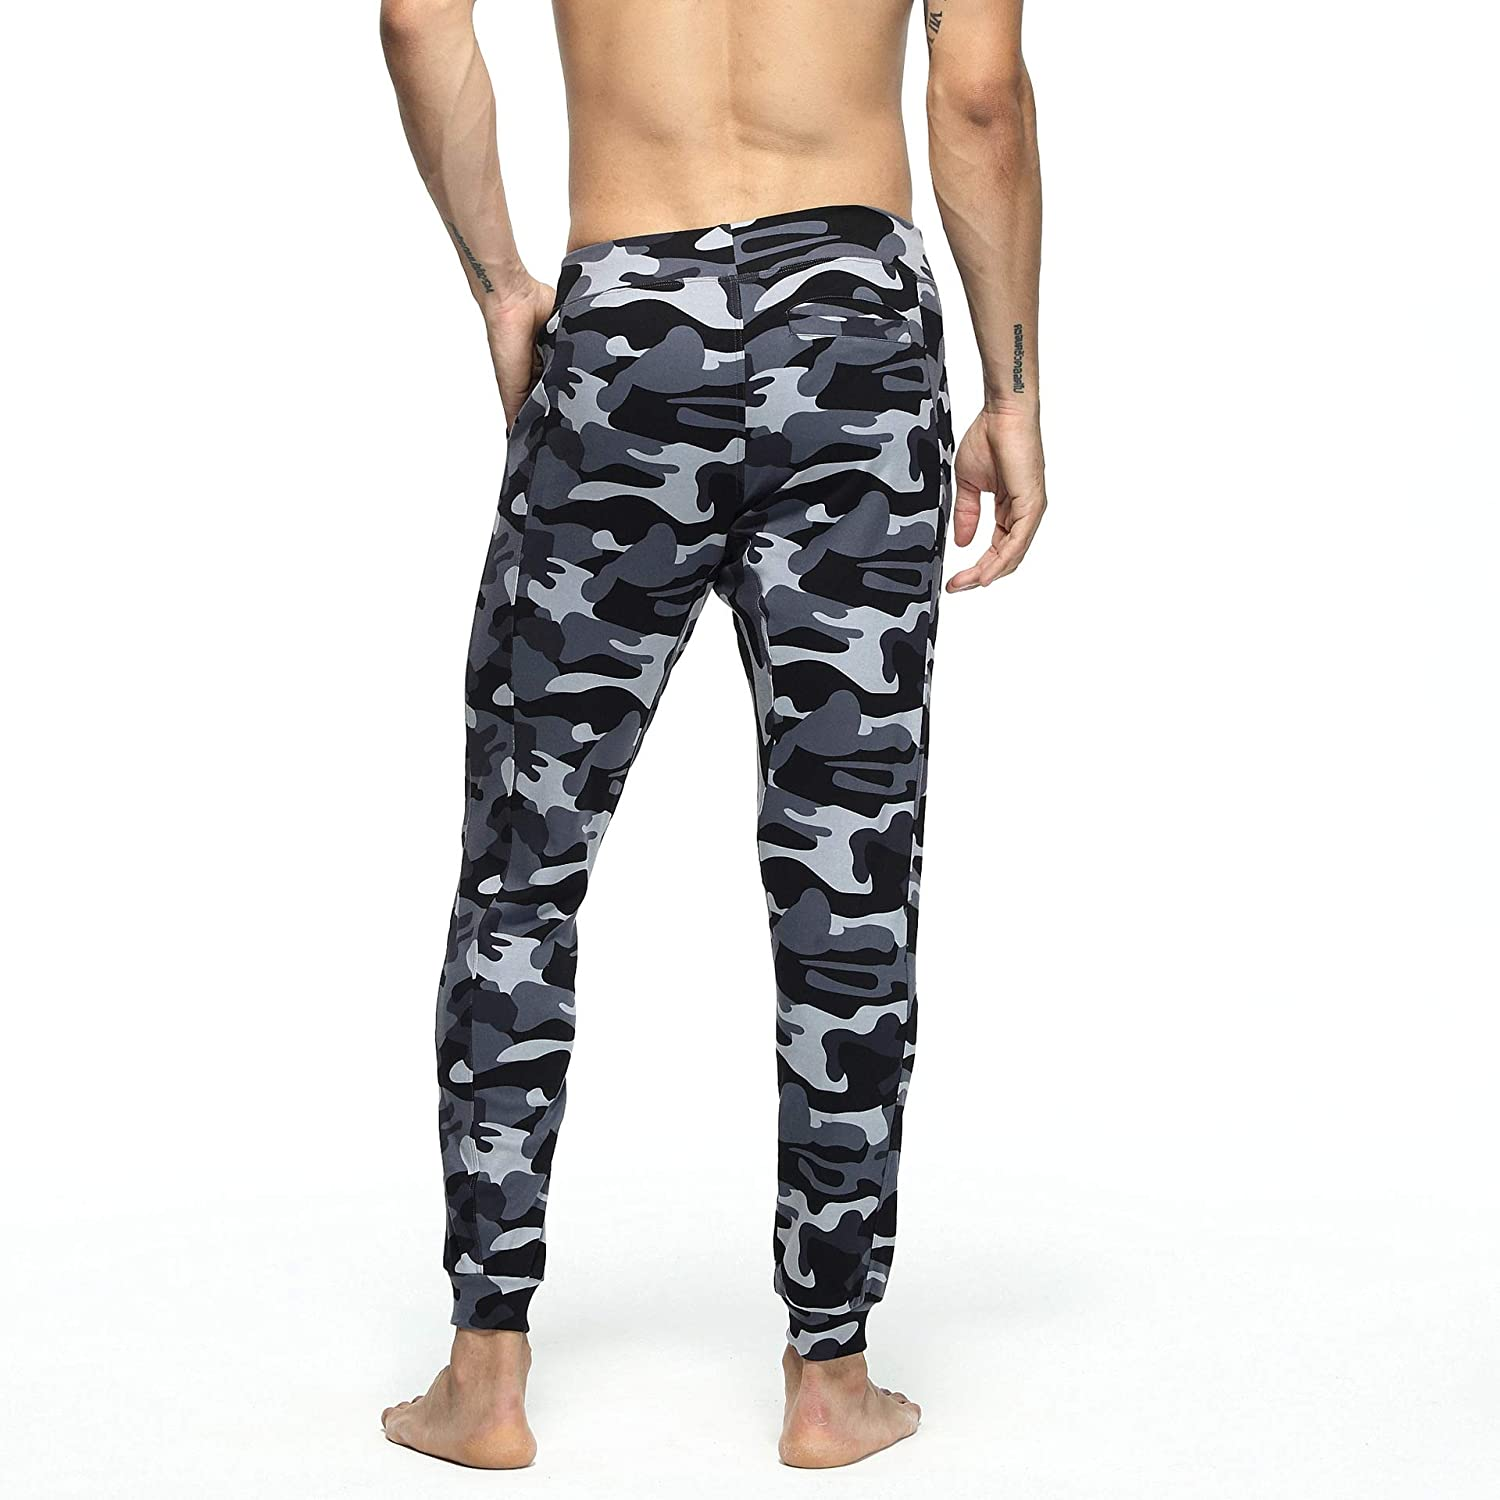 Yingshif Men Casual Low-Rise Camouflage Cotton Homewear Jogger Pants